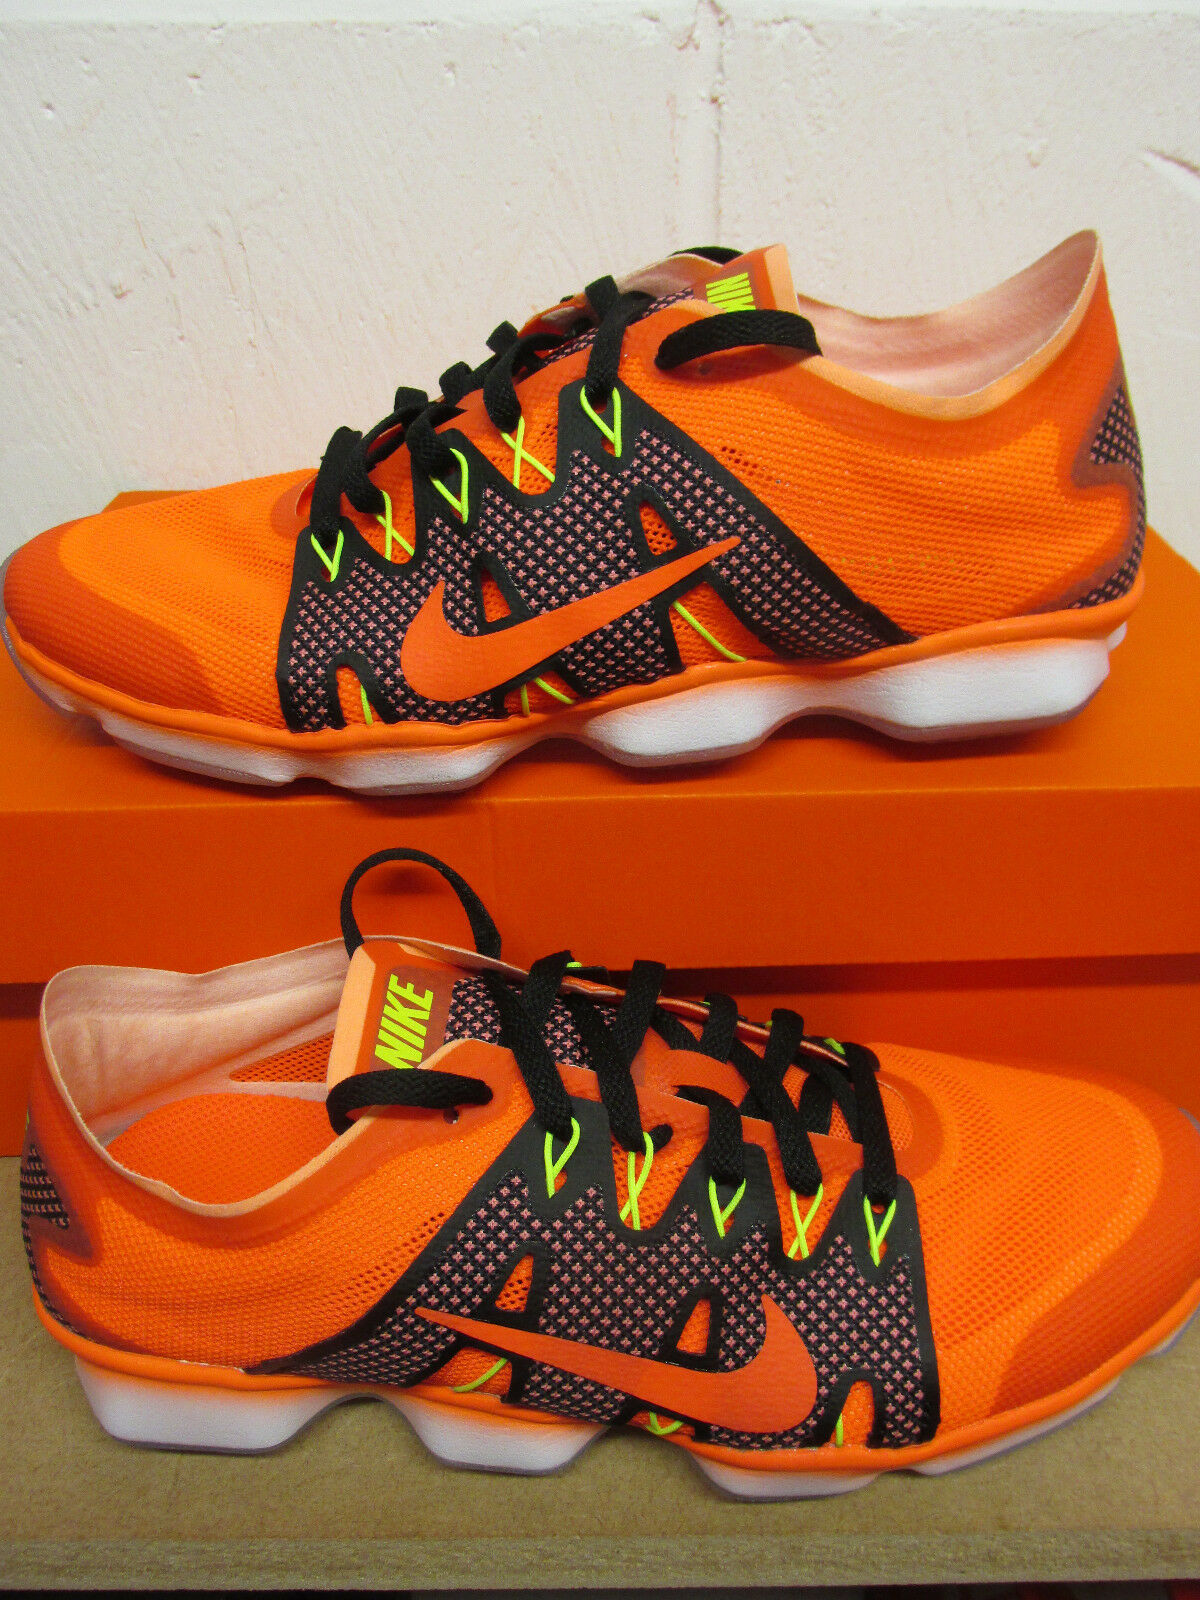 Nike Femmes Air Zoom Compatible avec Agility 2 Basket Course 806472 800 Baskets